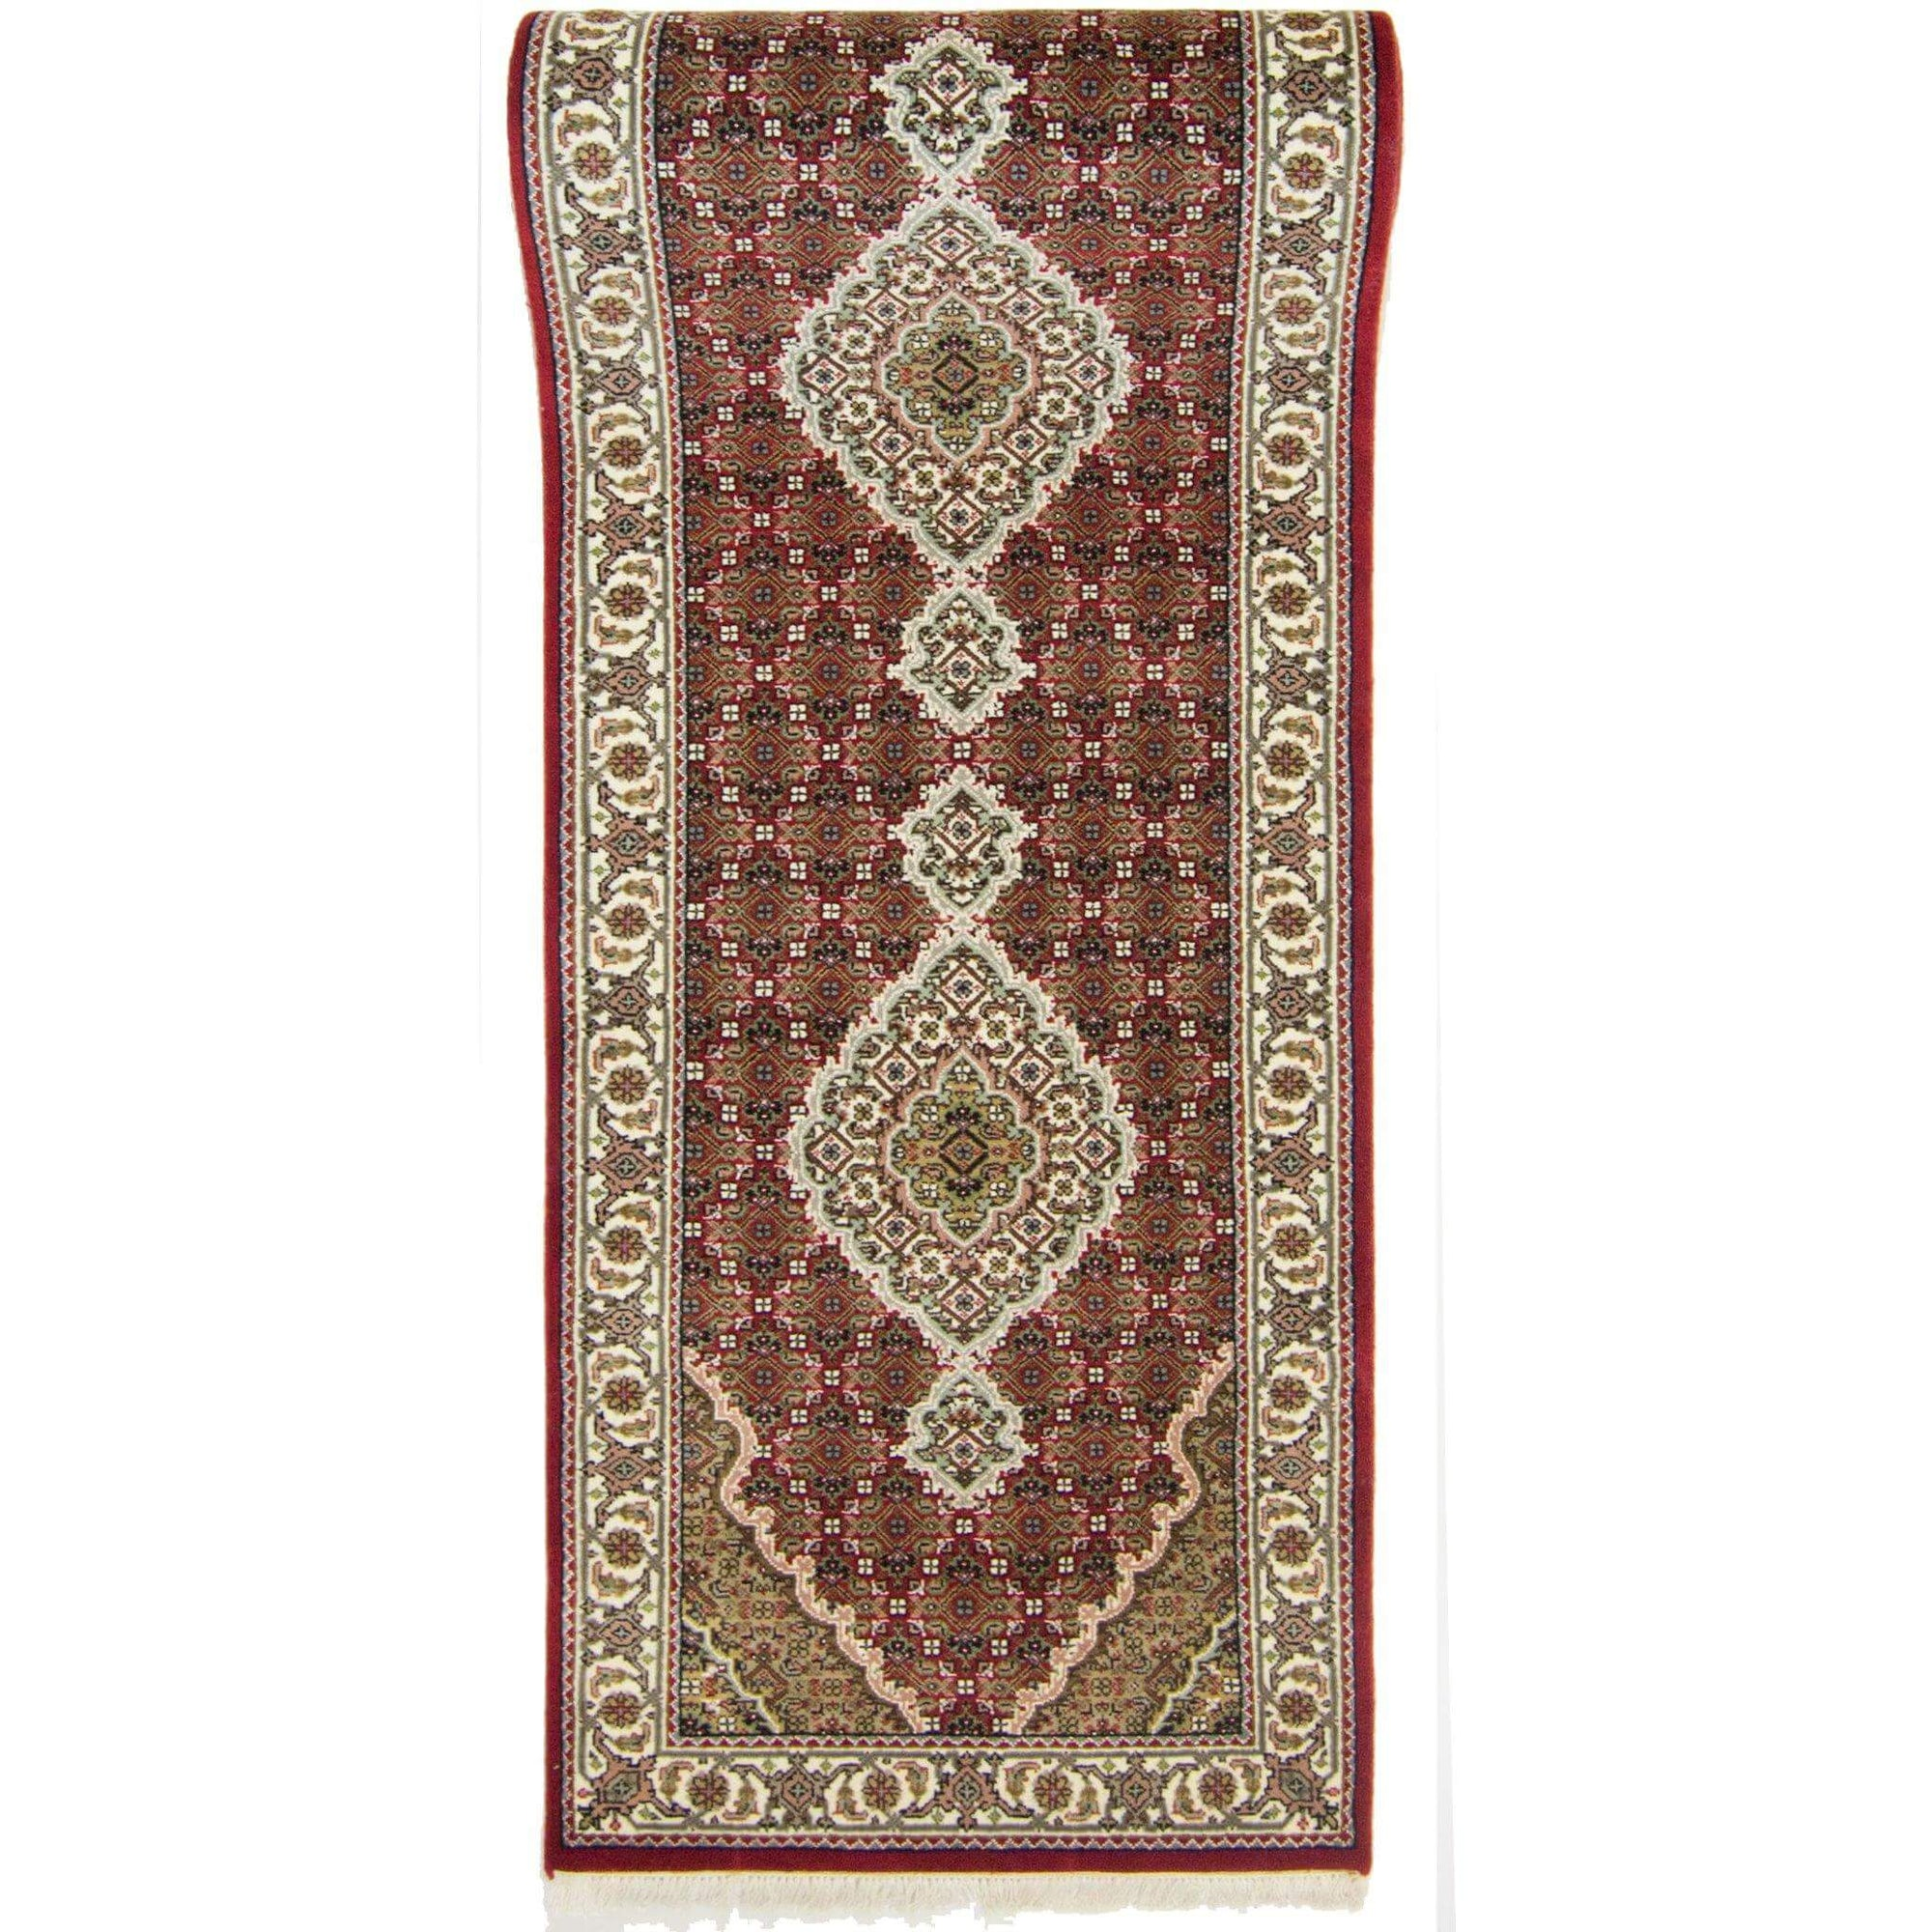 Super Fine Hand-knotted Wool and Silk Tabriz - Mahi Runner 83 cm x 302 cm Persian-Rug | House-of-Haghi | NewMarket | Auckland | NZ | Handmade Persian Rugs | Hand Knotted Persian Rugs